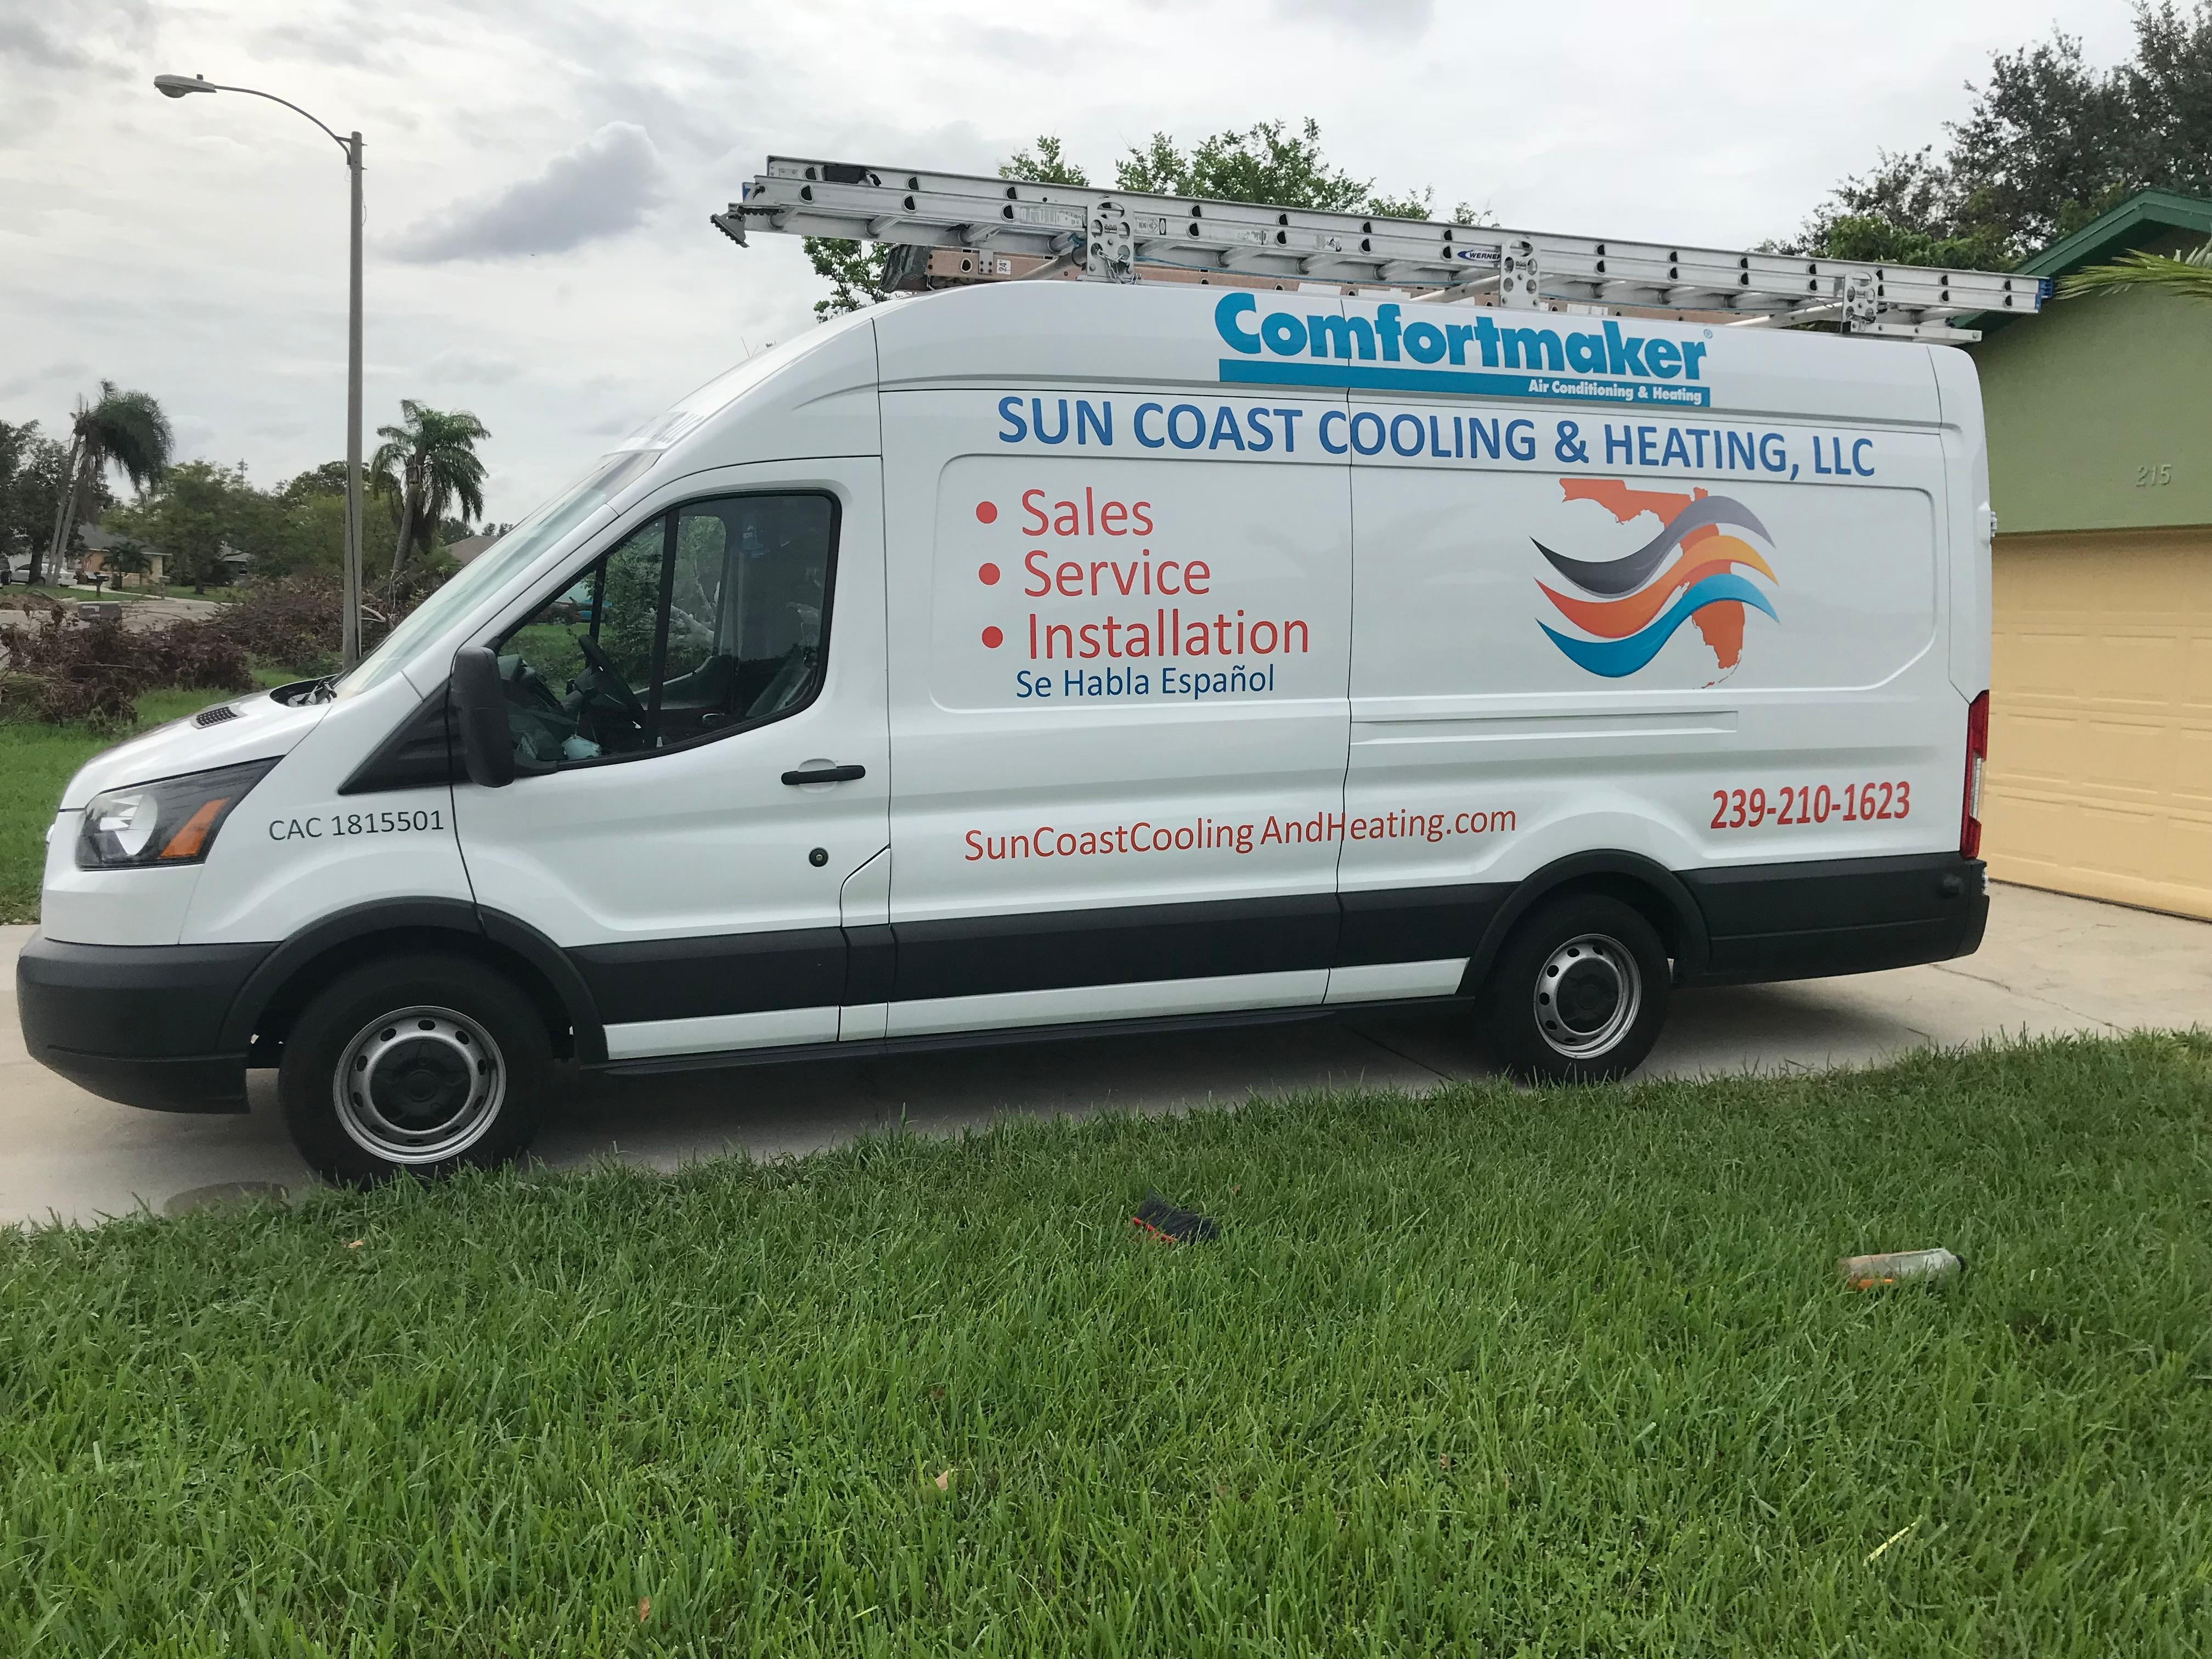 Suncoast Cooling & Heating LLC image 0